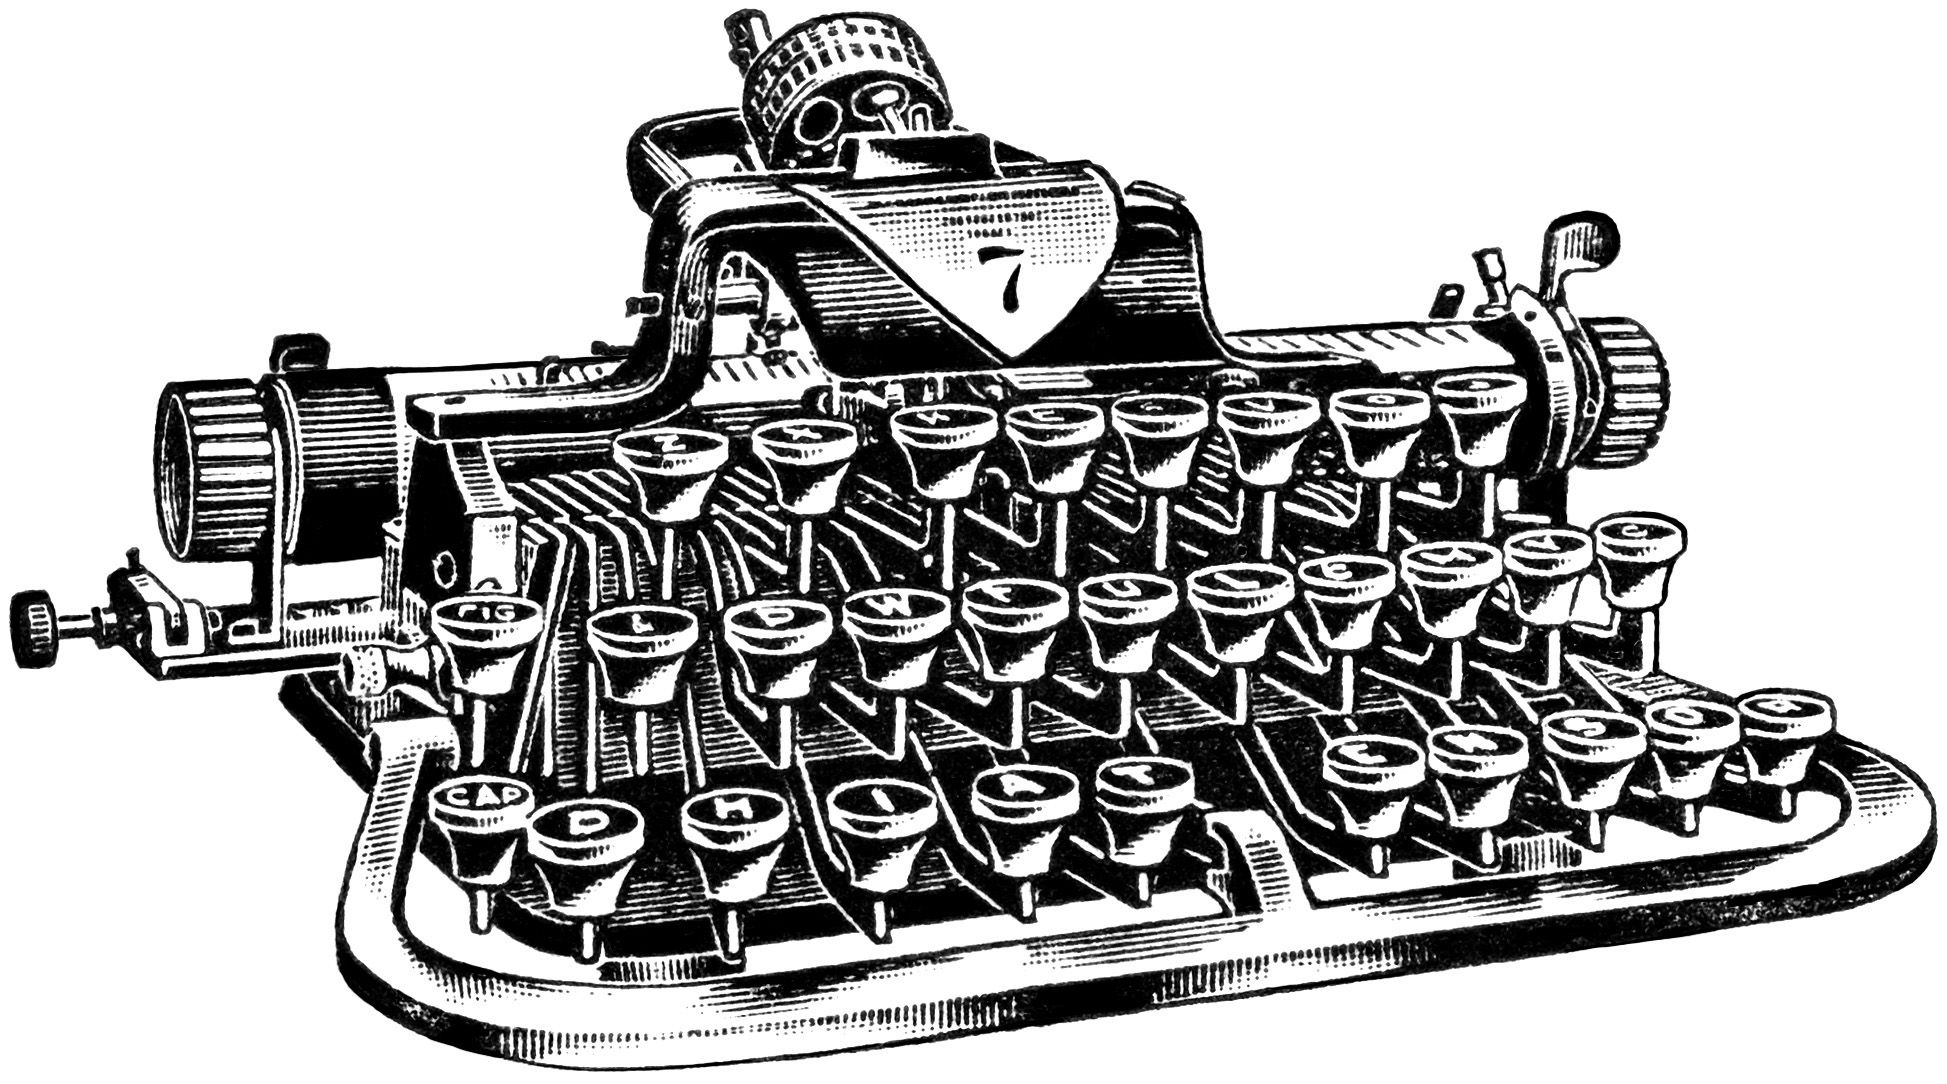 Vintage Clip Art - 3 Antique Typewriter Graphics - The Graphics Fairy for  RSVP? Description